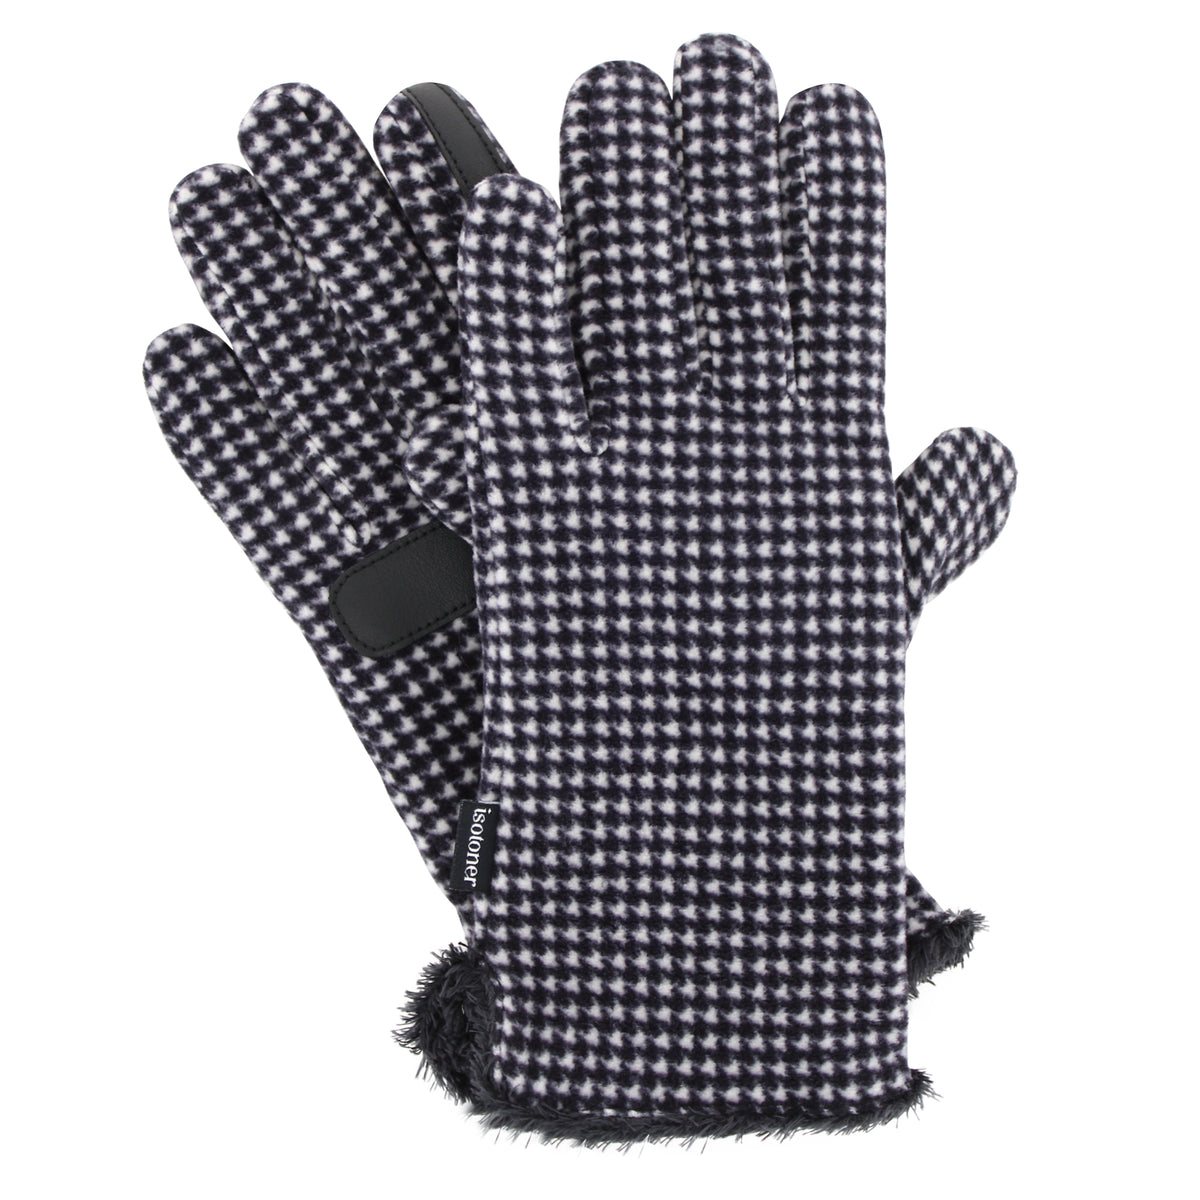 Isotoner Women's SmarTouch Stretch Fleece Gloves with SmartDri